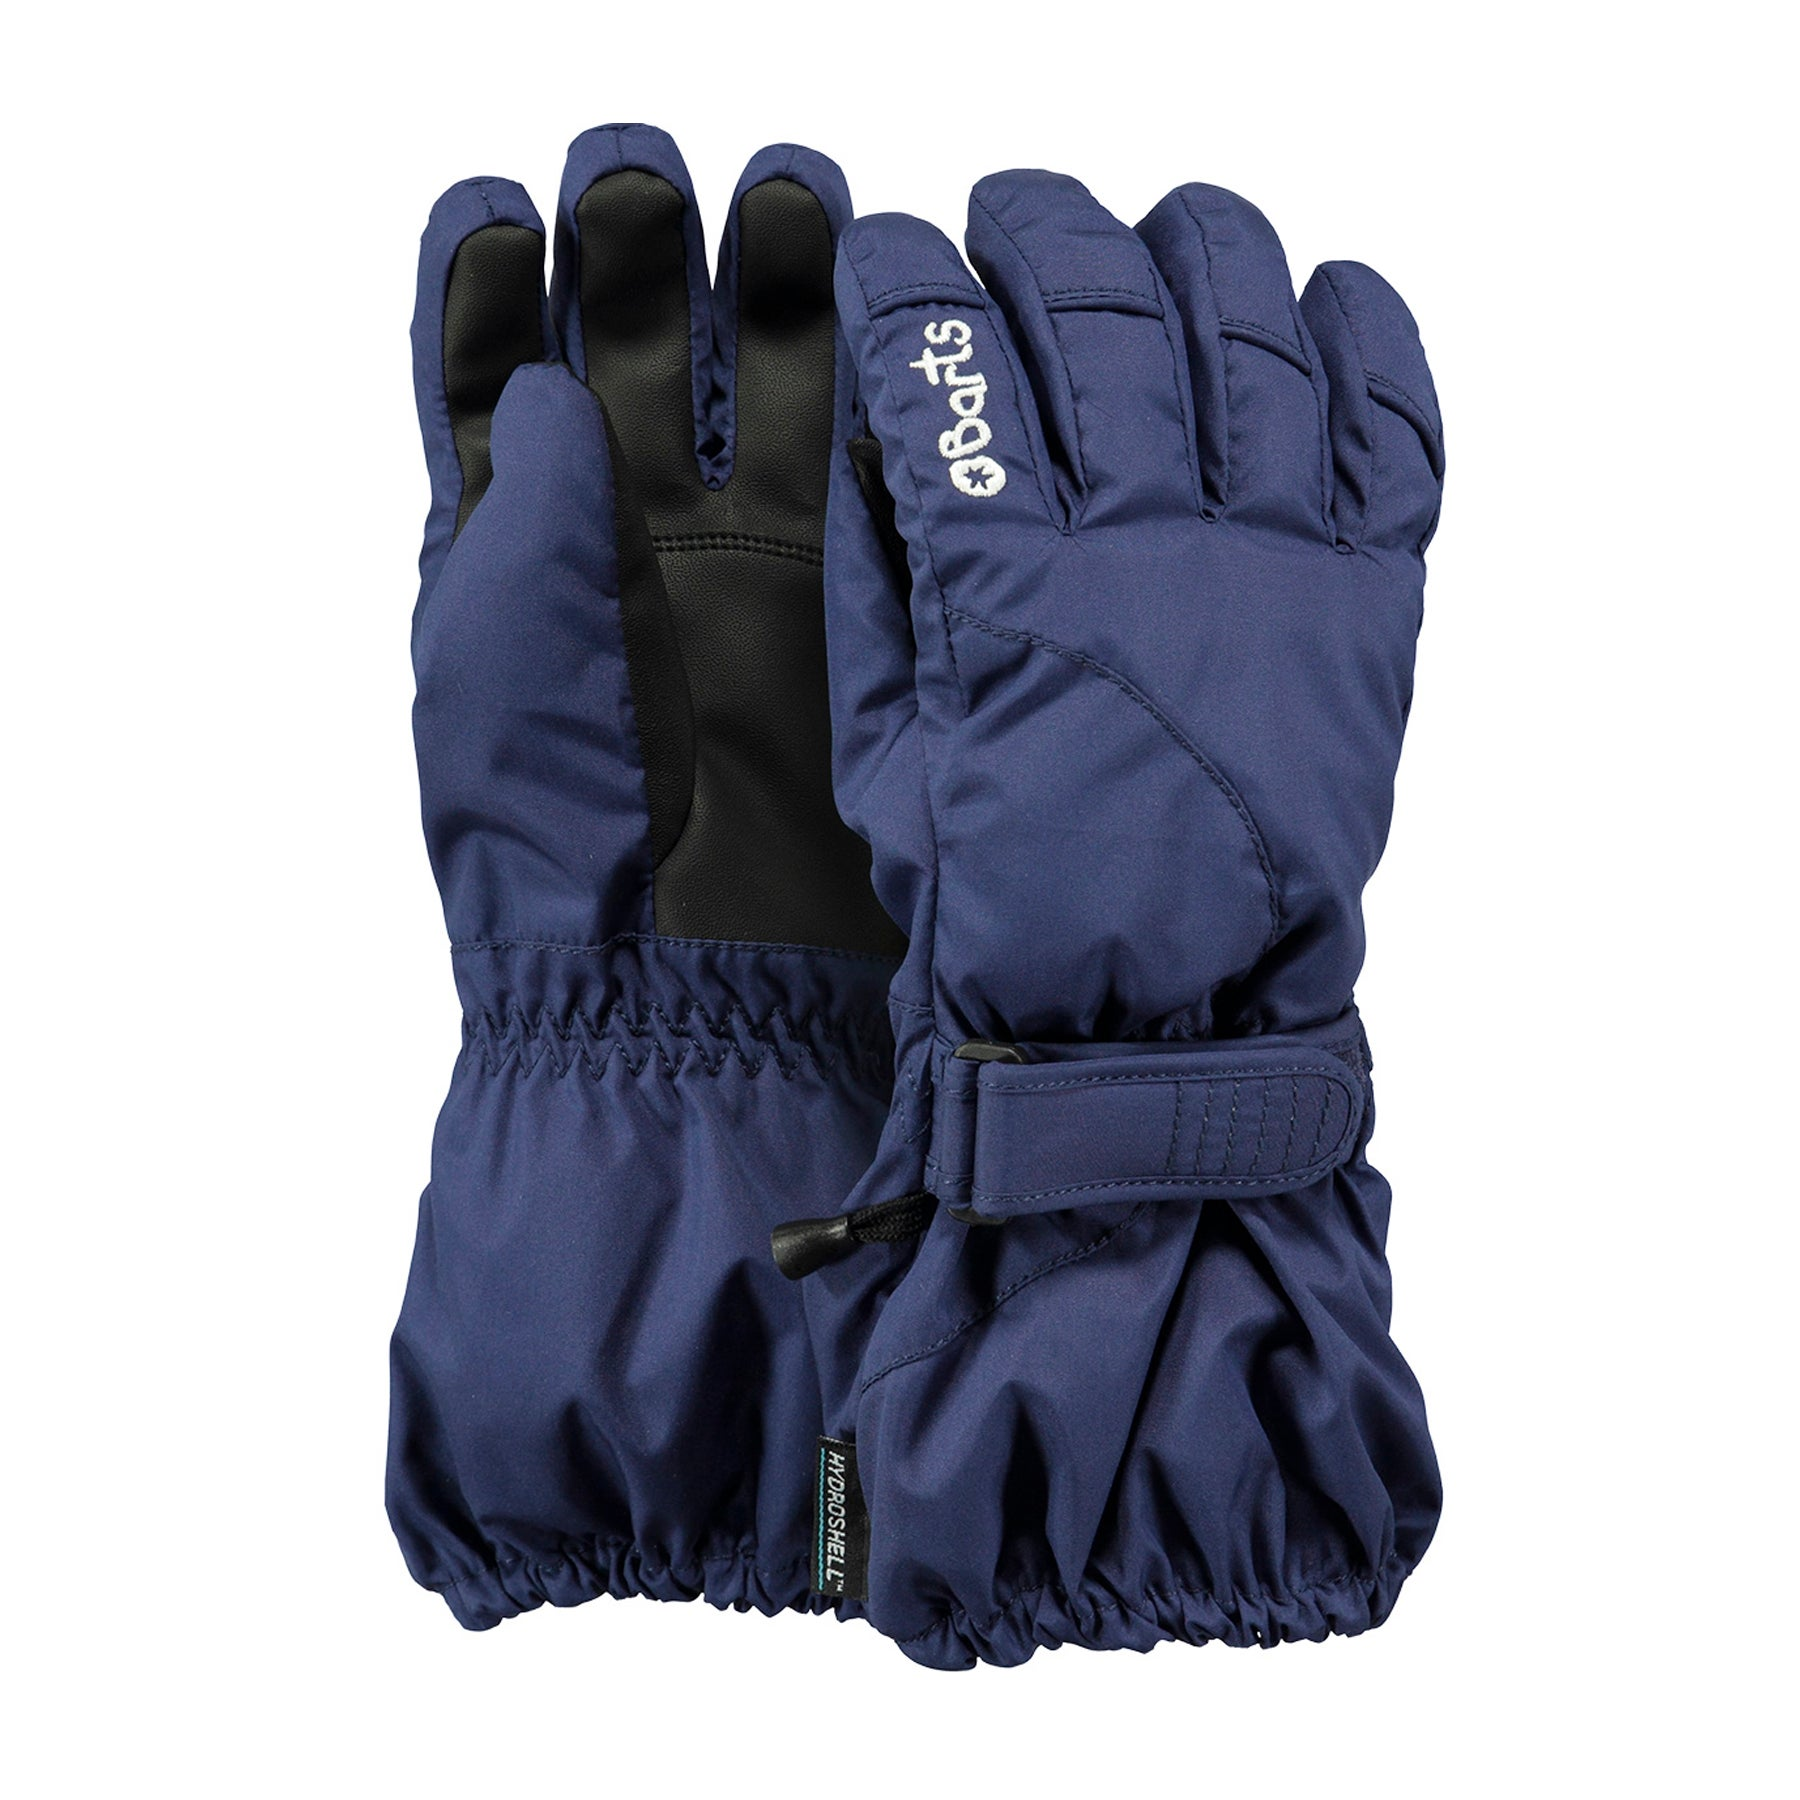 Barts Tec Kids Snow Gloves - Navy